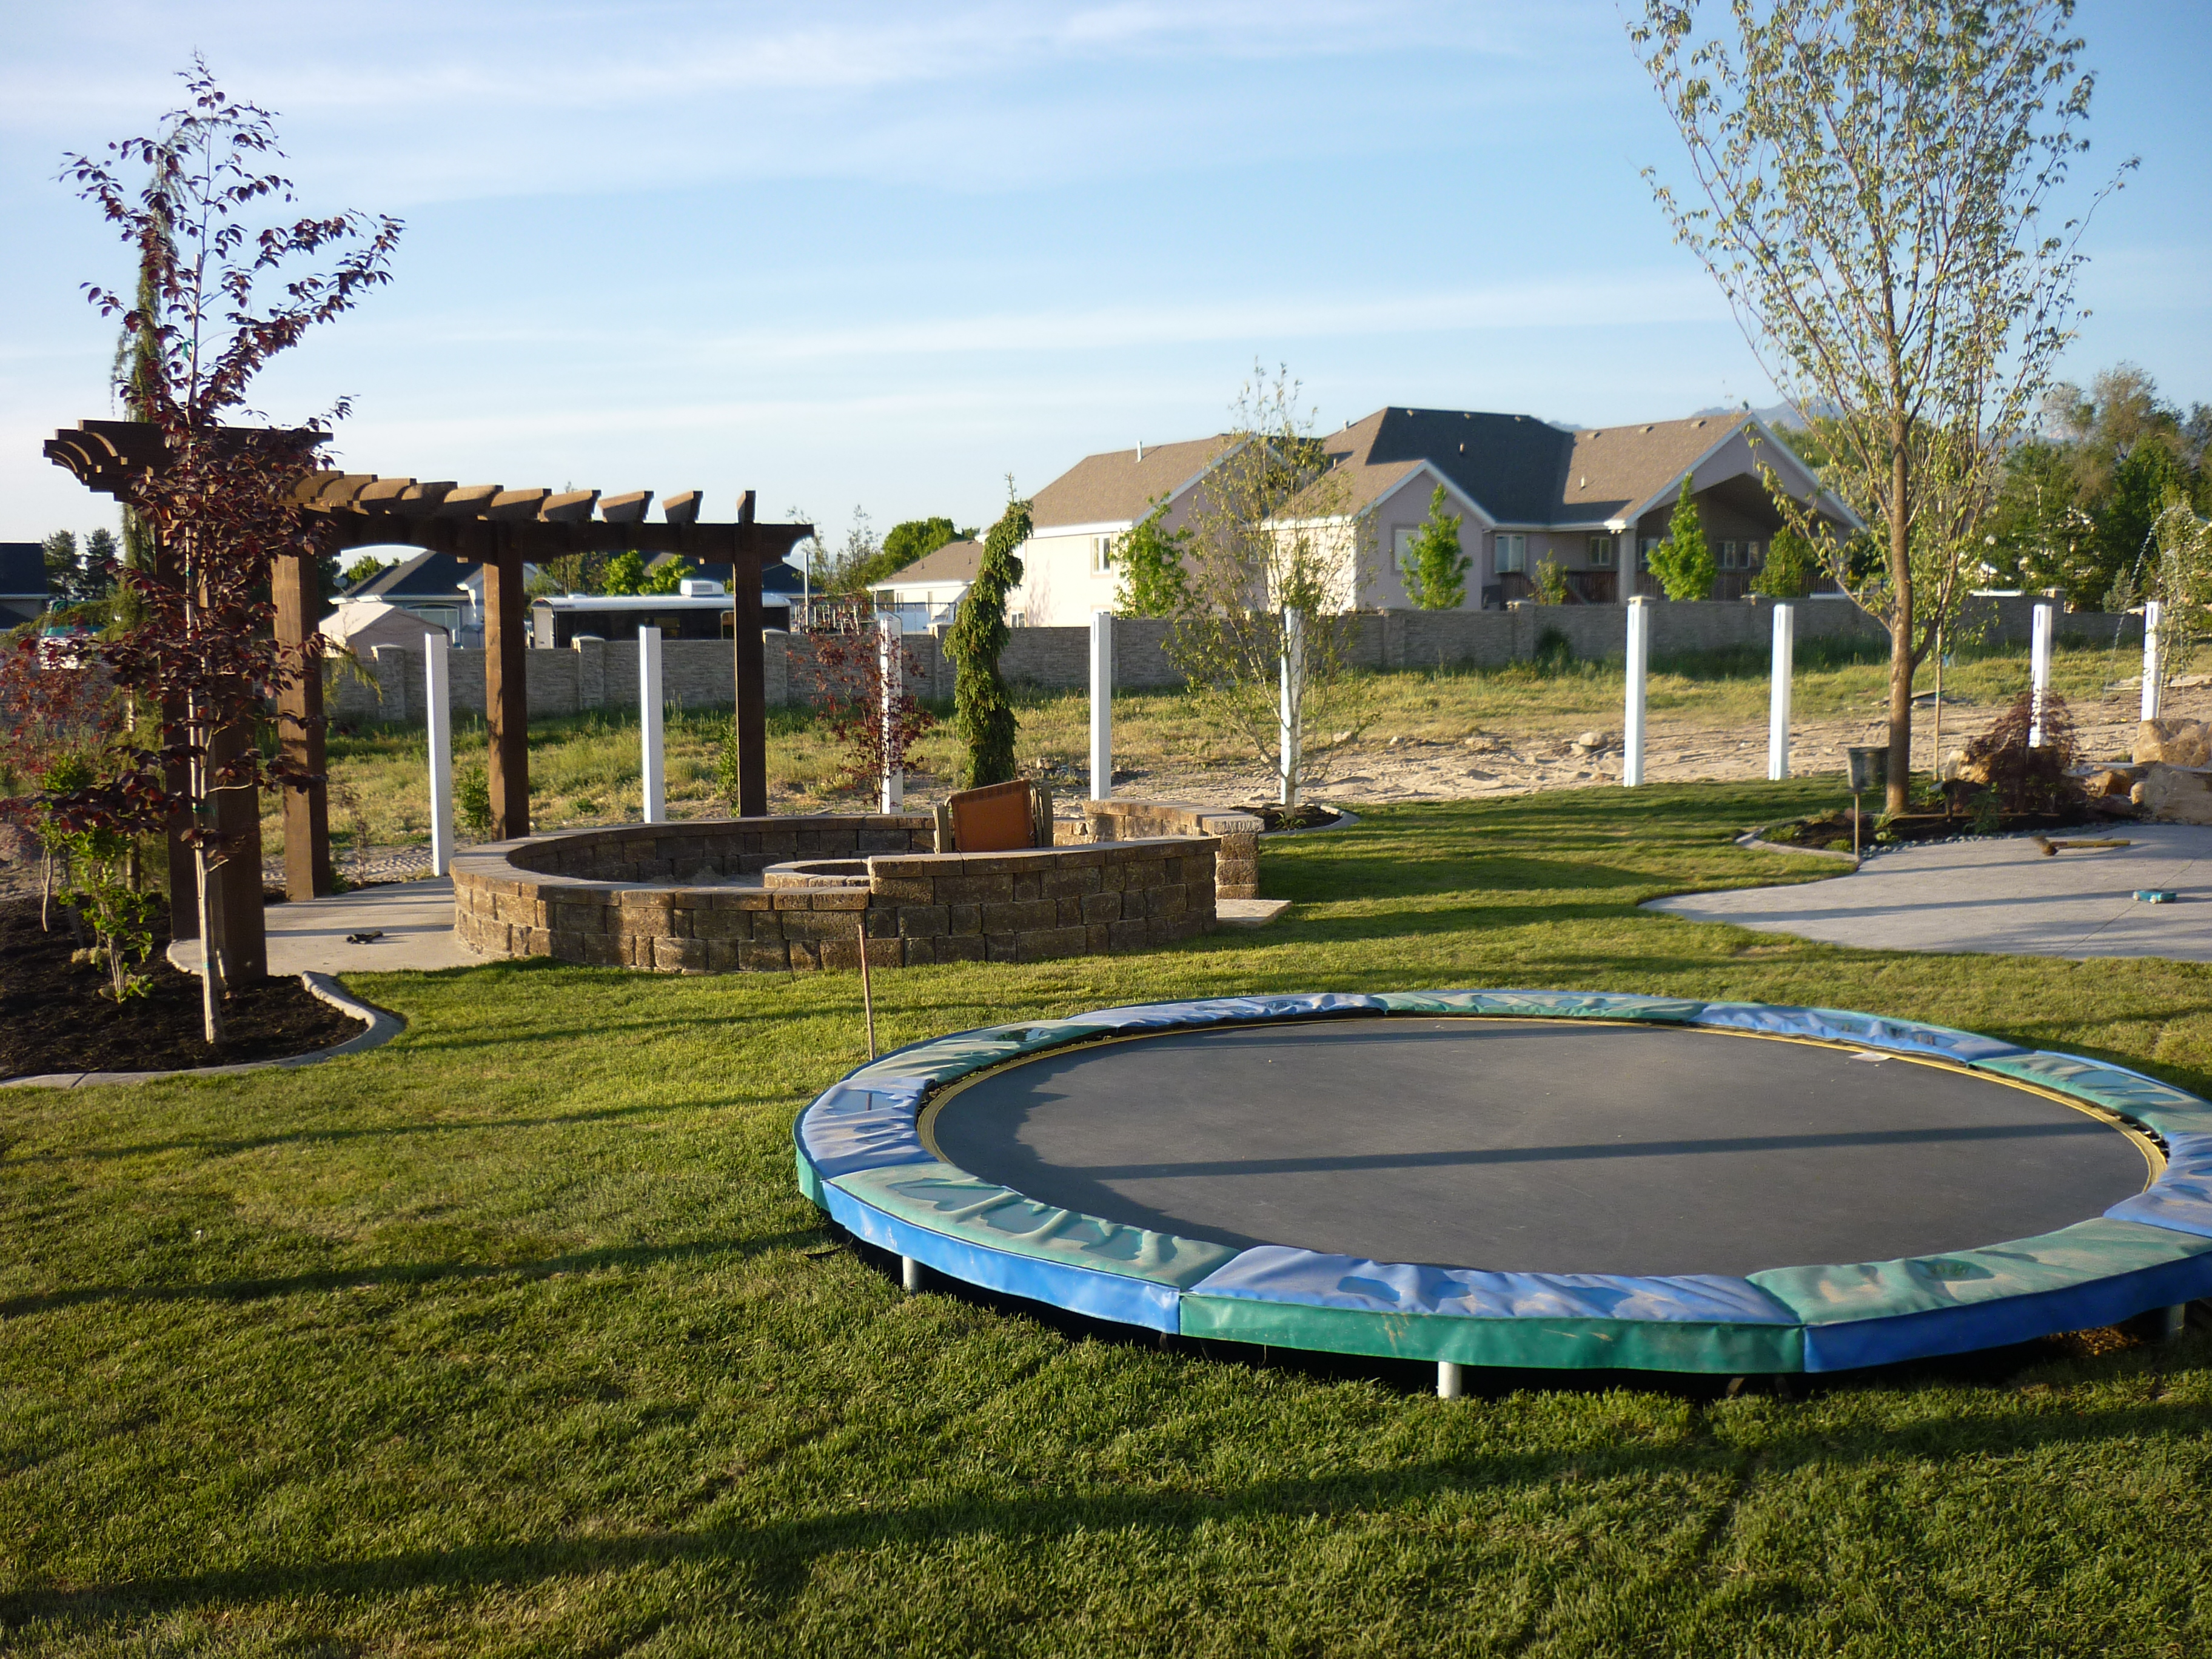 Utah Landscaper Landscaping The Front And Backyard Landscaping Company For Your Designs